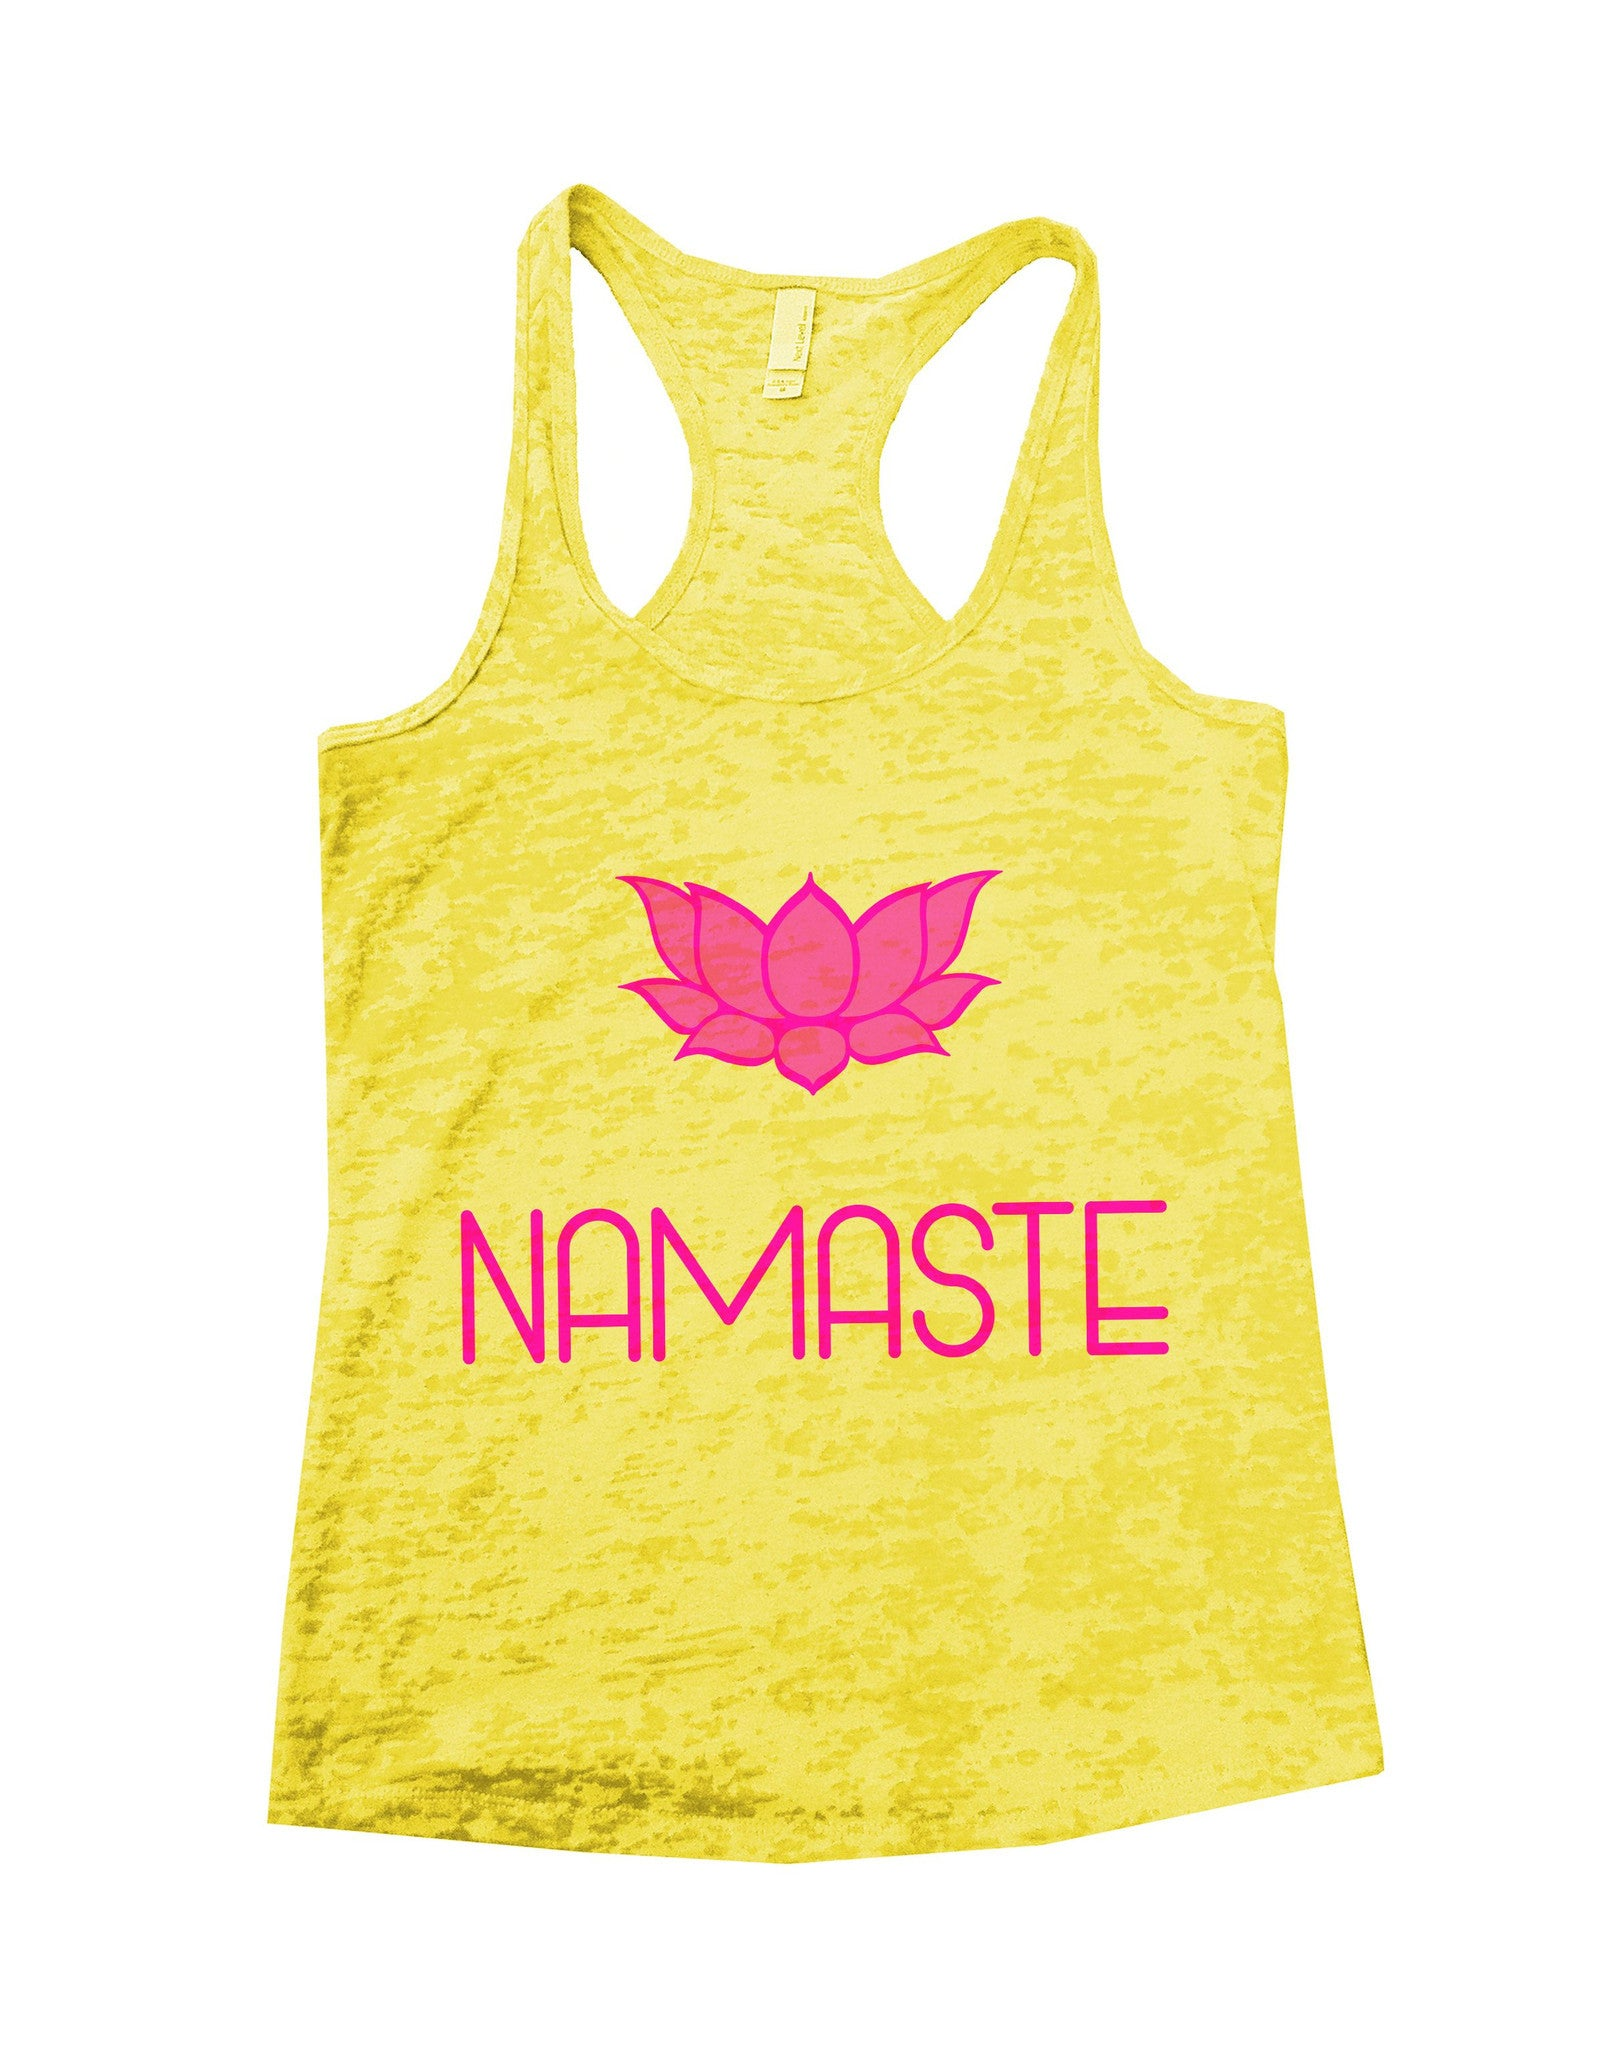 Namaste Burnout Tank Top By BurnoutTankTops.com - 631 - Funny Shirts Tank Tops Burnouts and Triblends  - 1